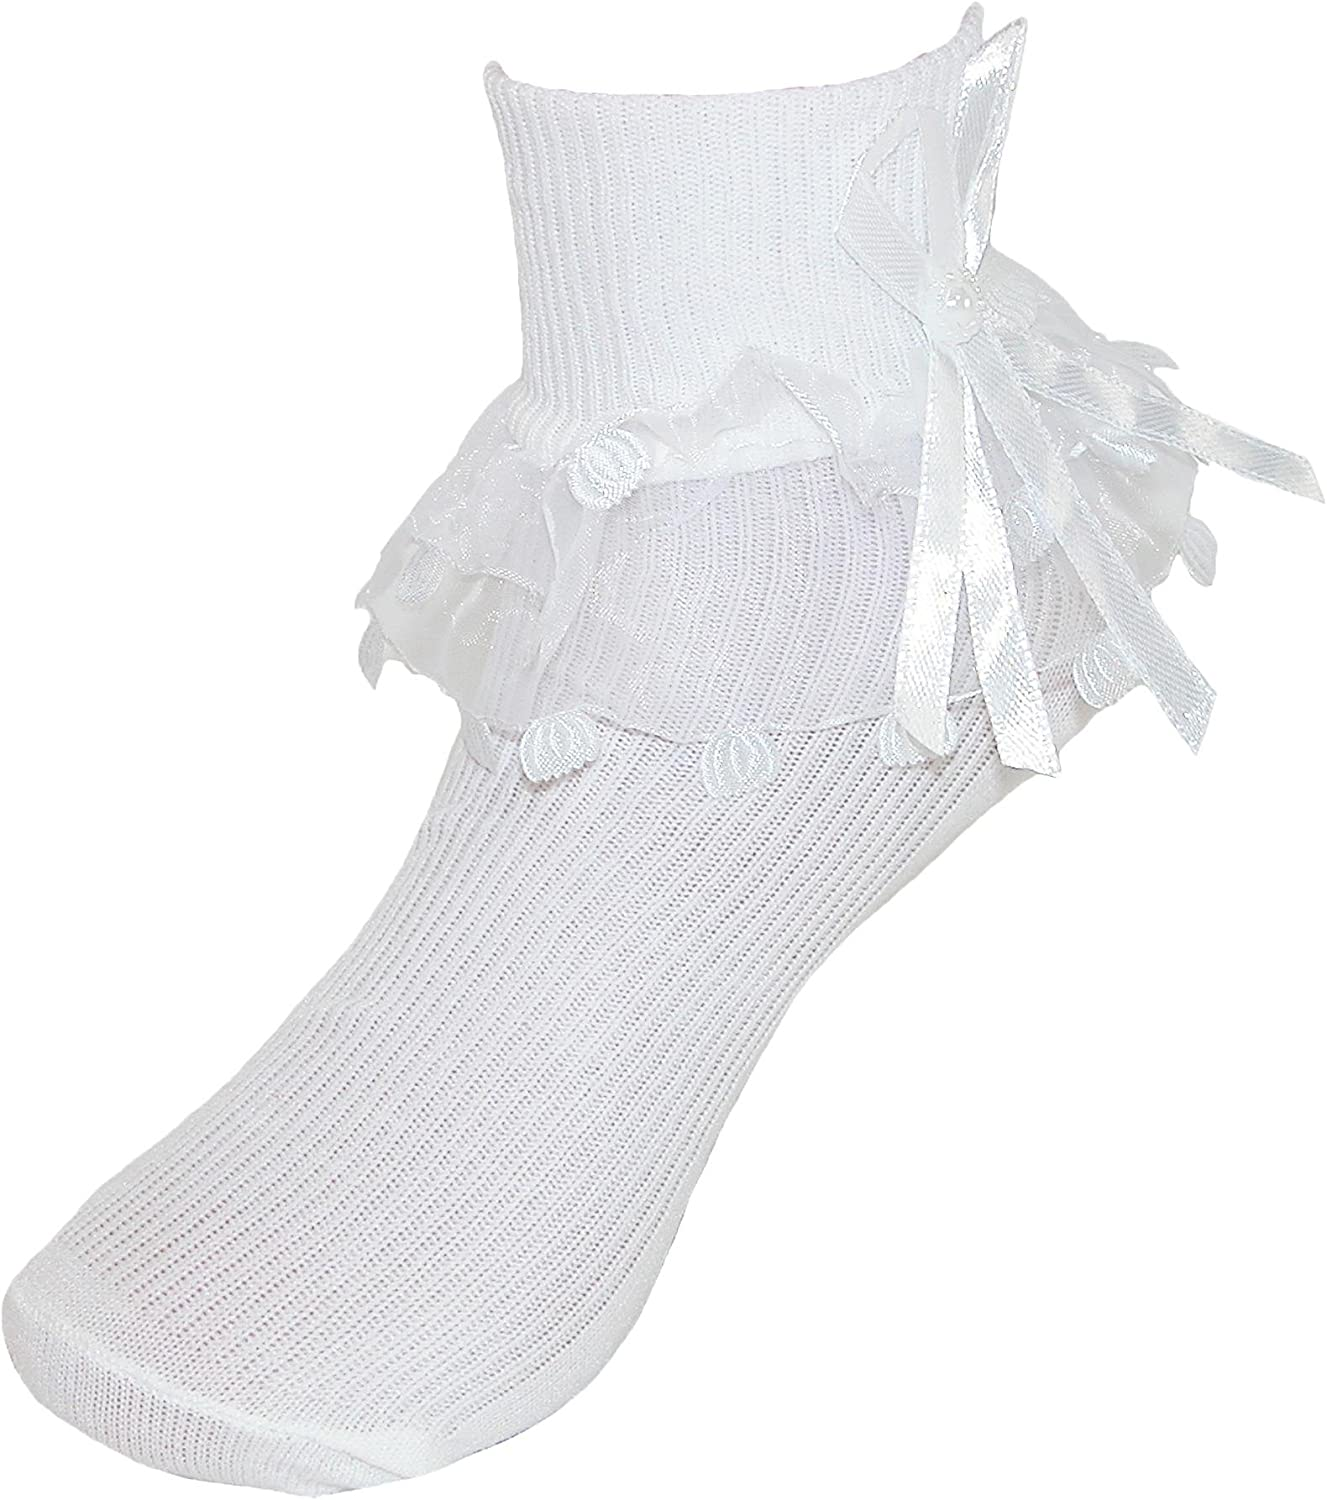 CTM Girls' Ruffle Trim Lace Anklet Socks (3 Pair Pack)